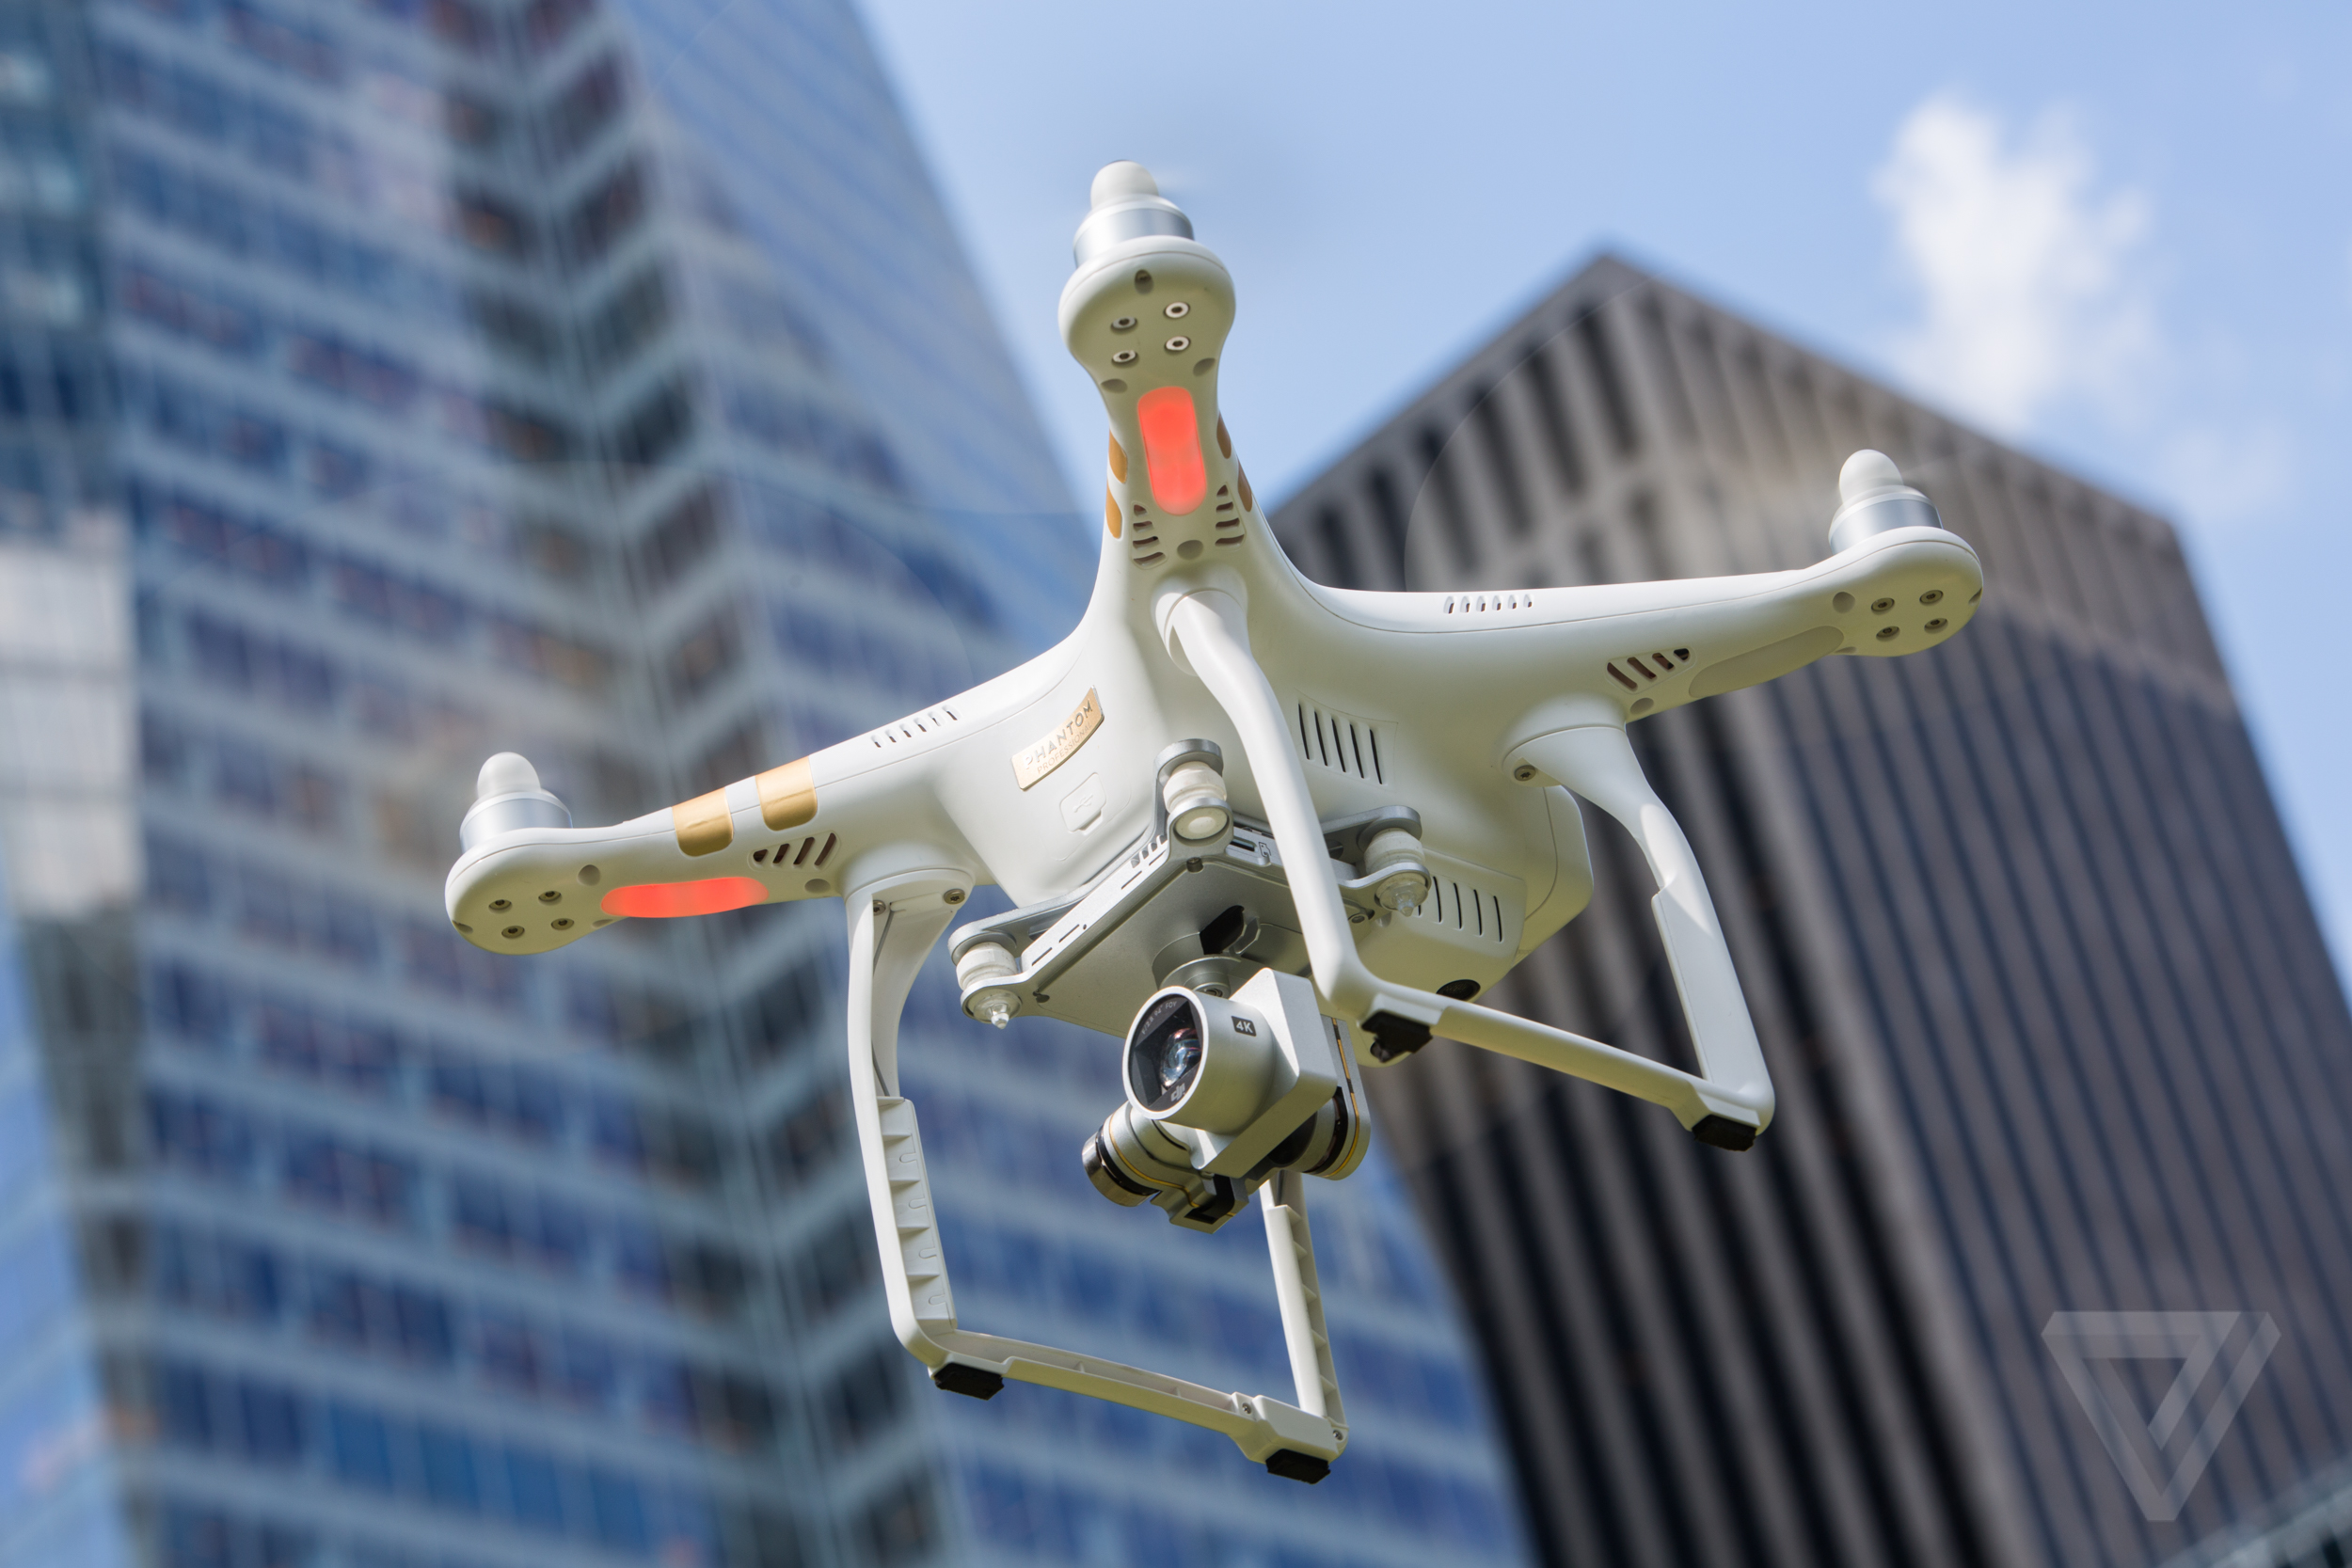 DJI Phantom 3 Review The Best Drone You Can Buy Just Got Even Better